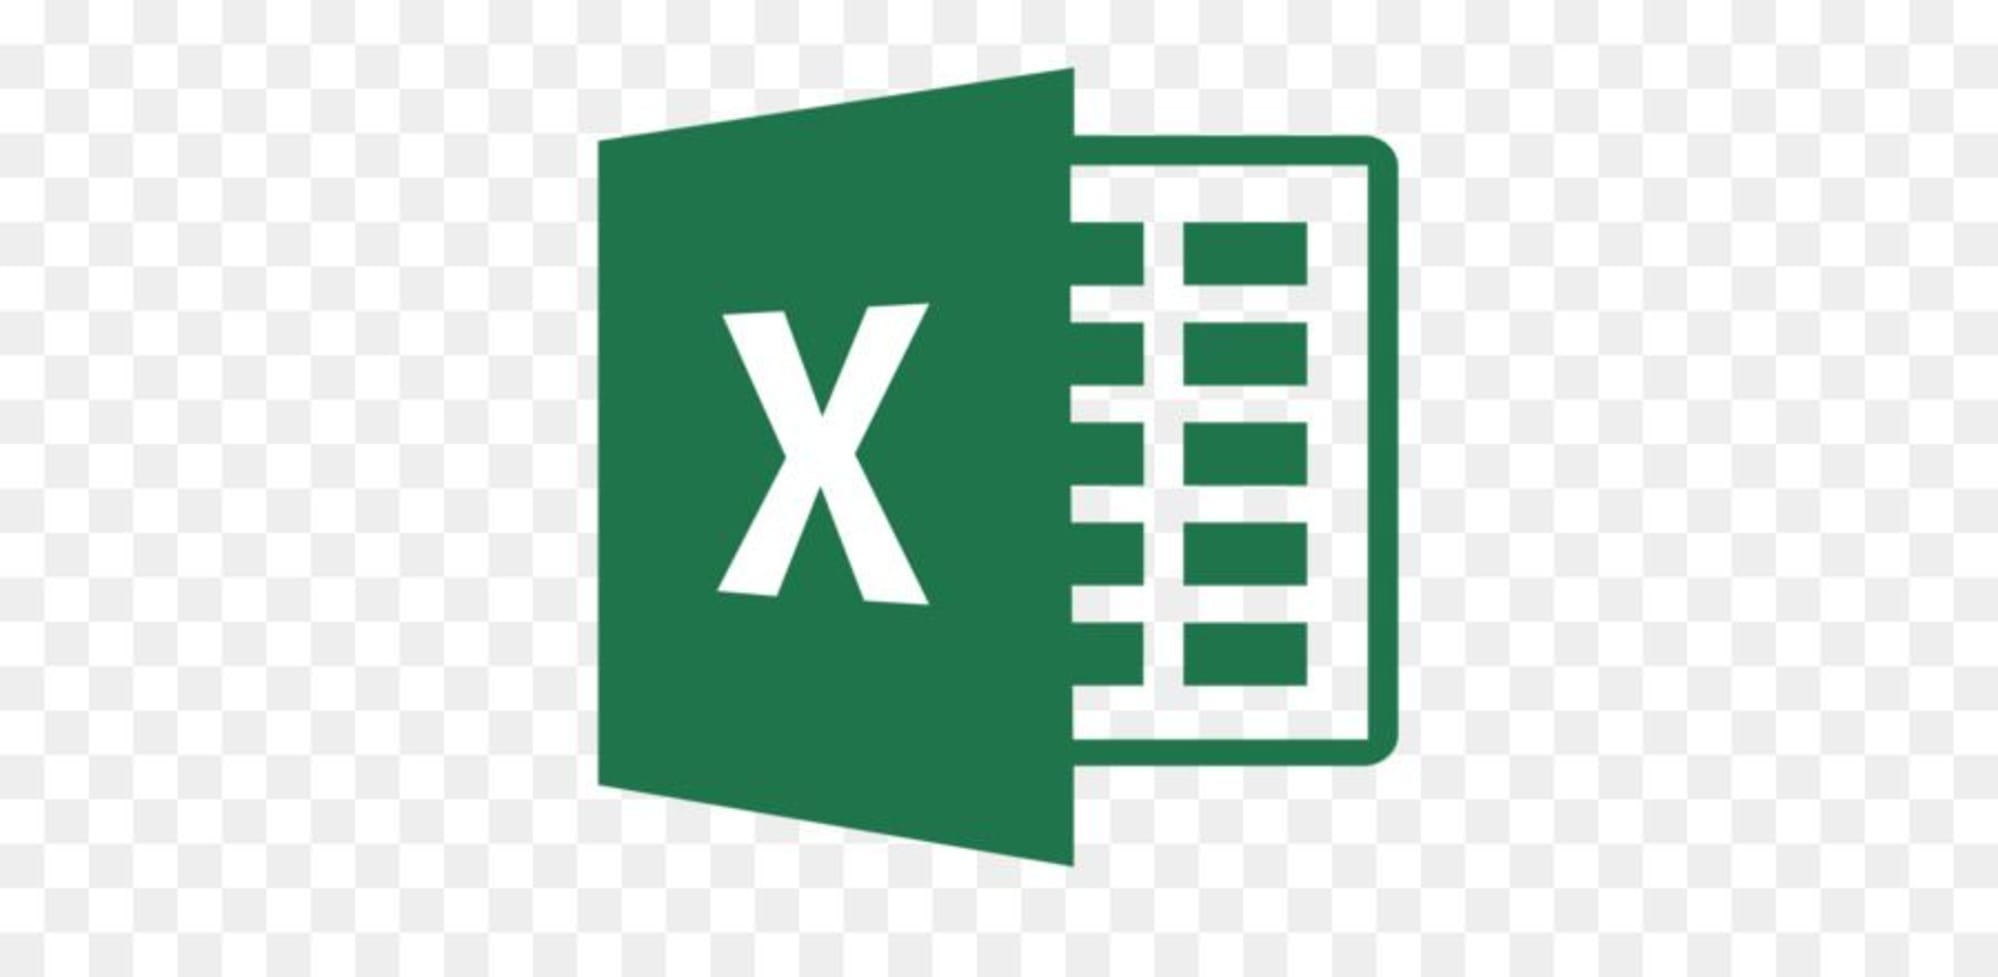 Use Powershell to Append Data to an Excel Spreadsheet